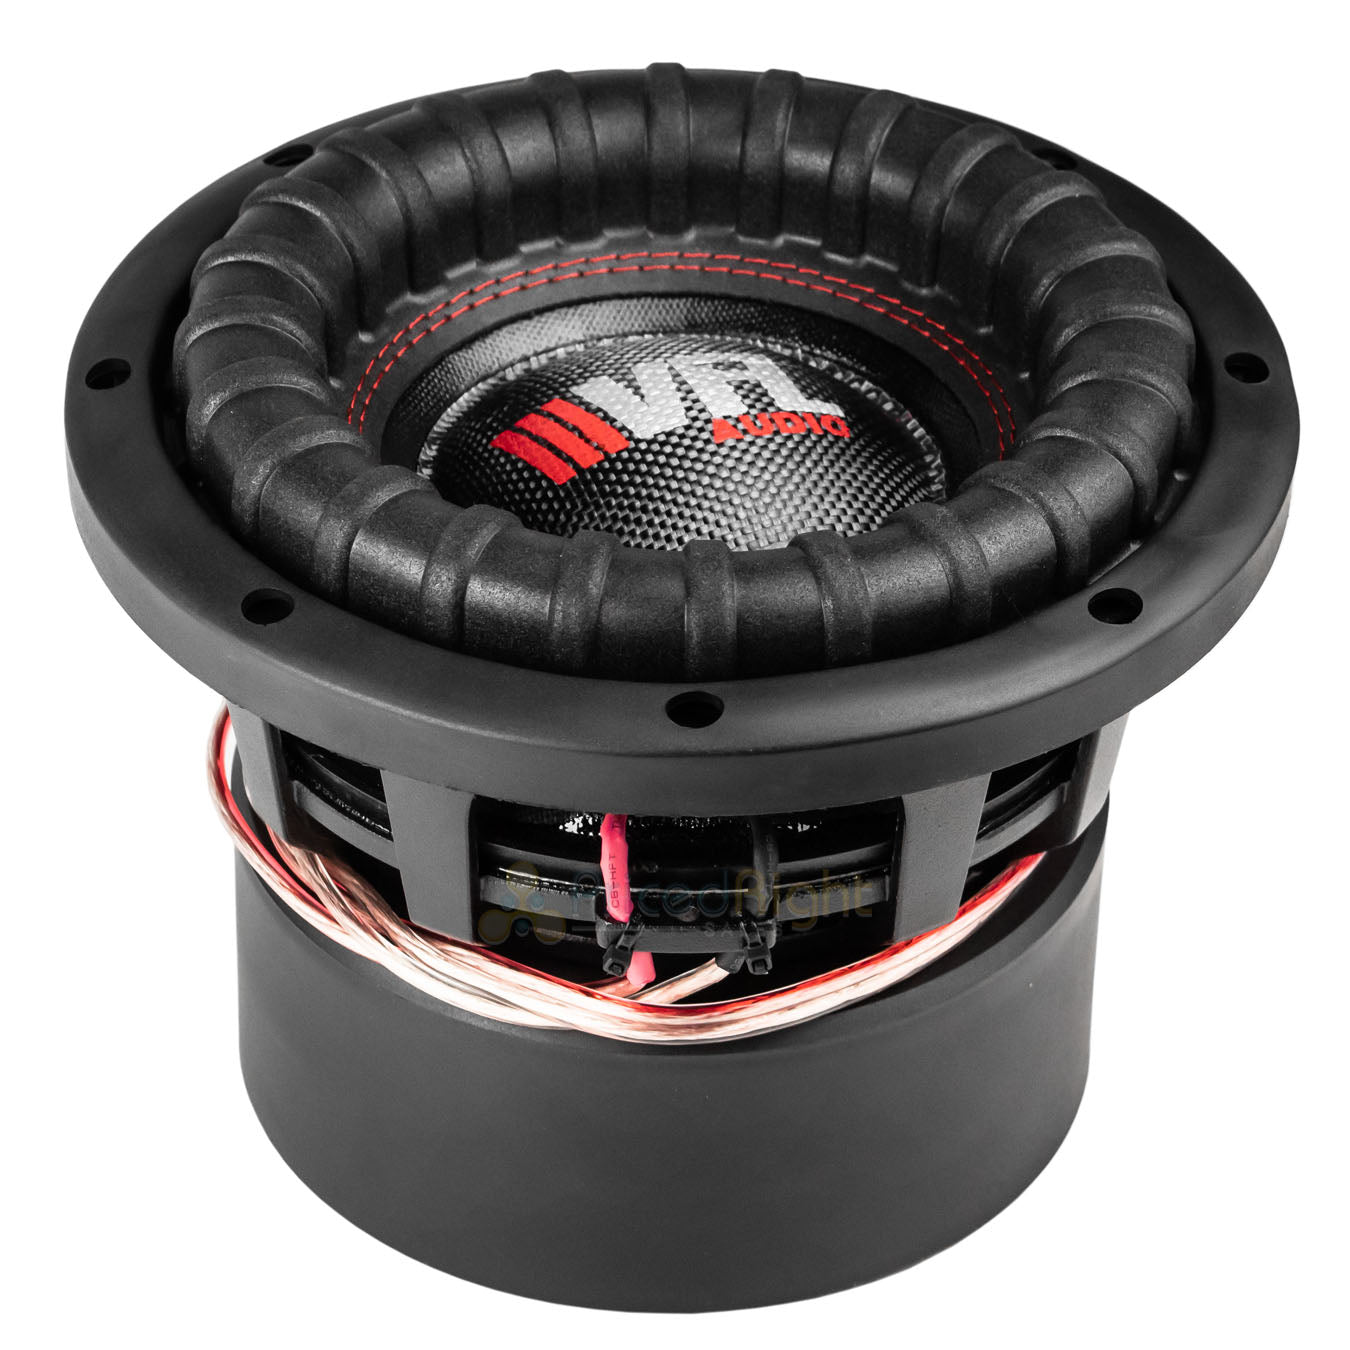 "American Bass 8"" Competition Subwoofer Dual 4 Ohm 1200W Max Sub VFL-8D4 Single"